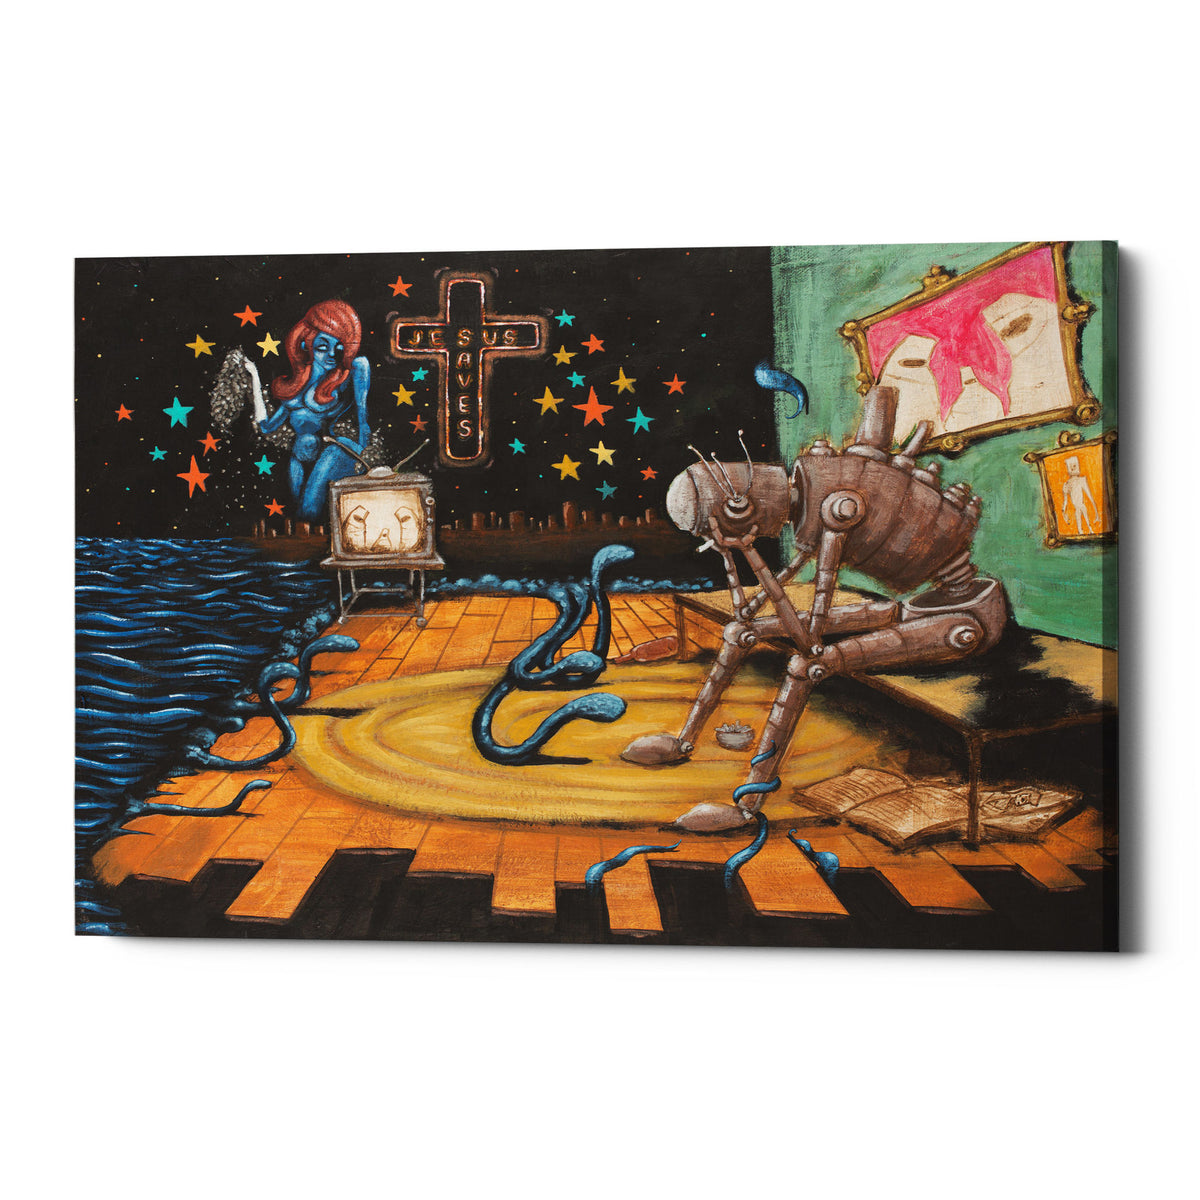 "Epic Graffiti ""Jesus Saves"" by Craig Snodgrass, Giclee Canvas Wall Art"